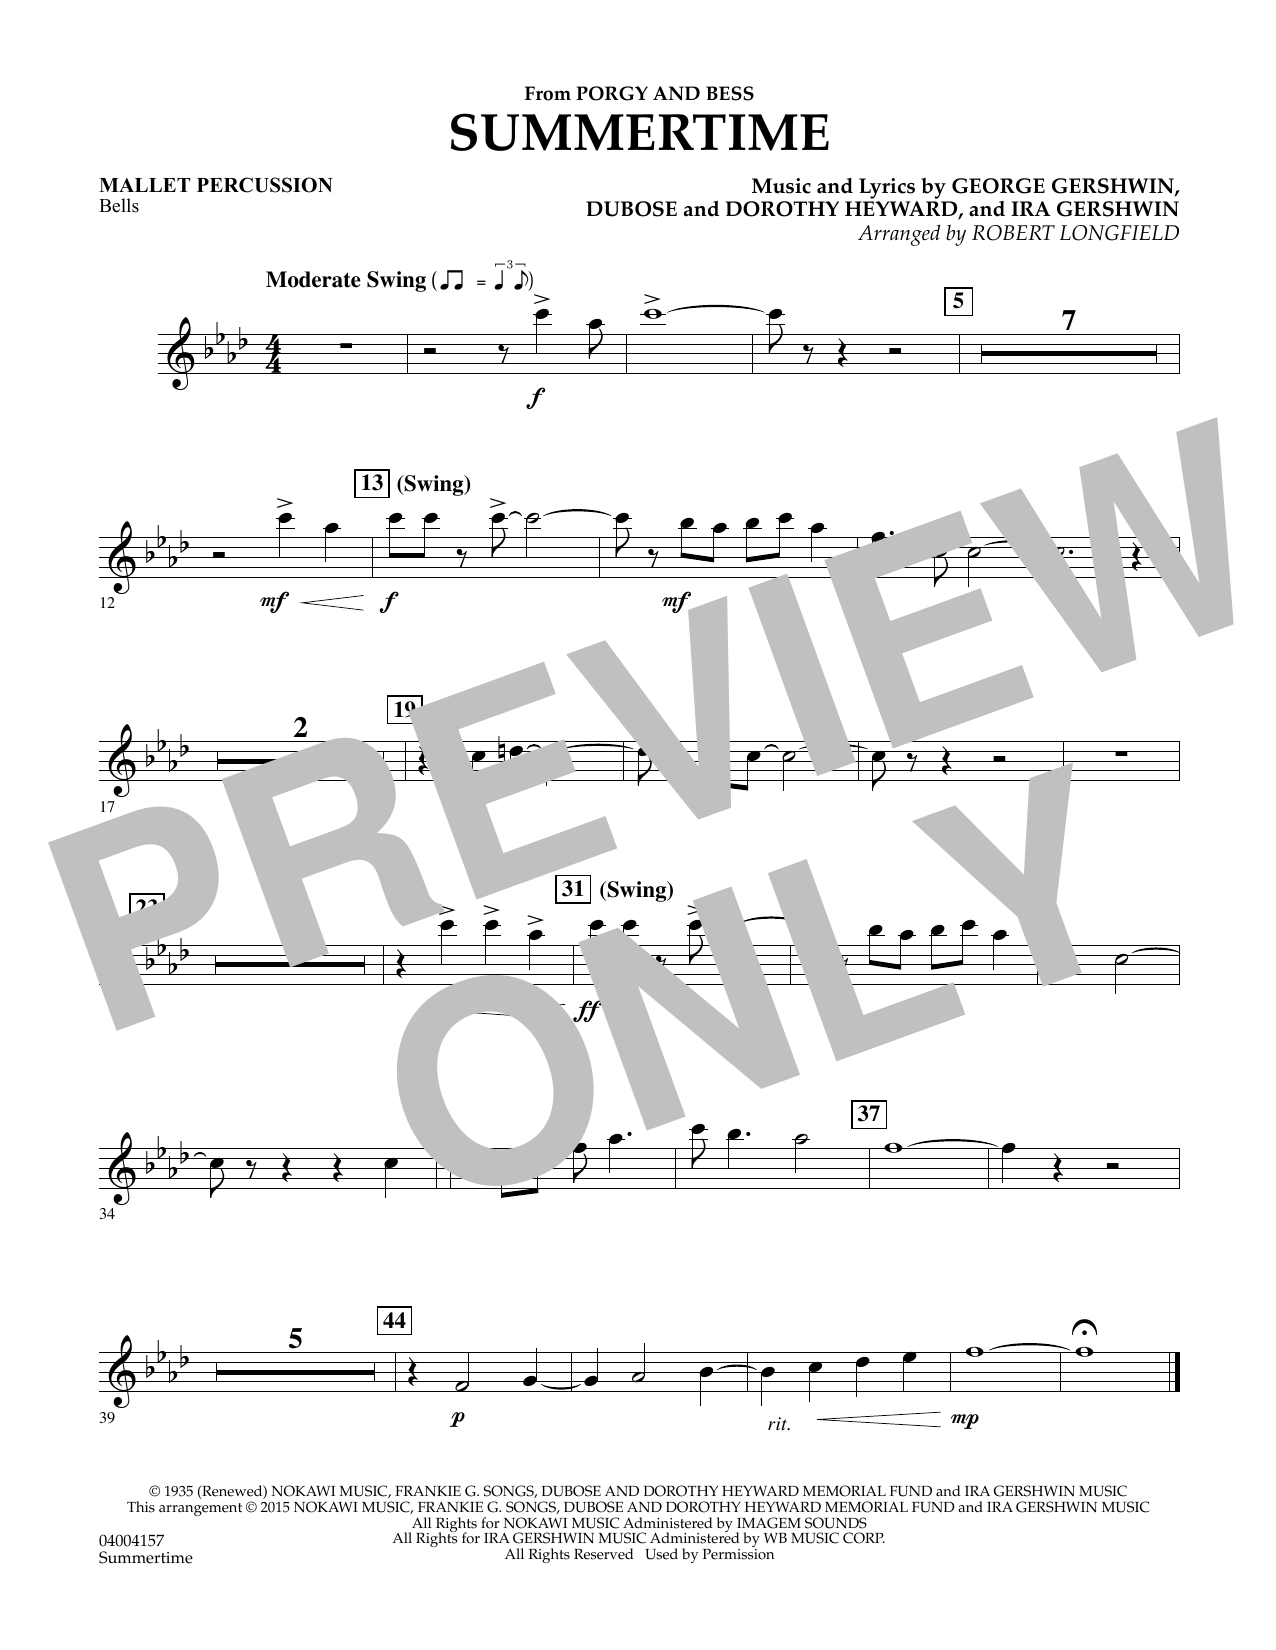 Summertime (from Porgy and Bess) - Mallet Percussion Sheet Music